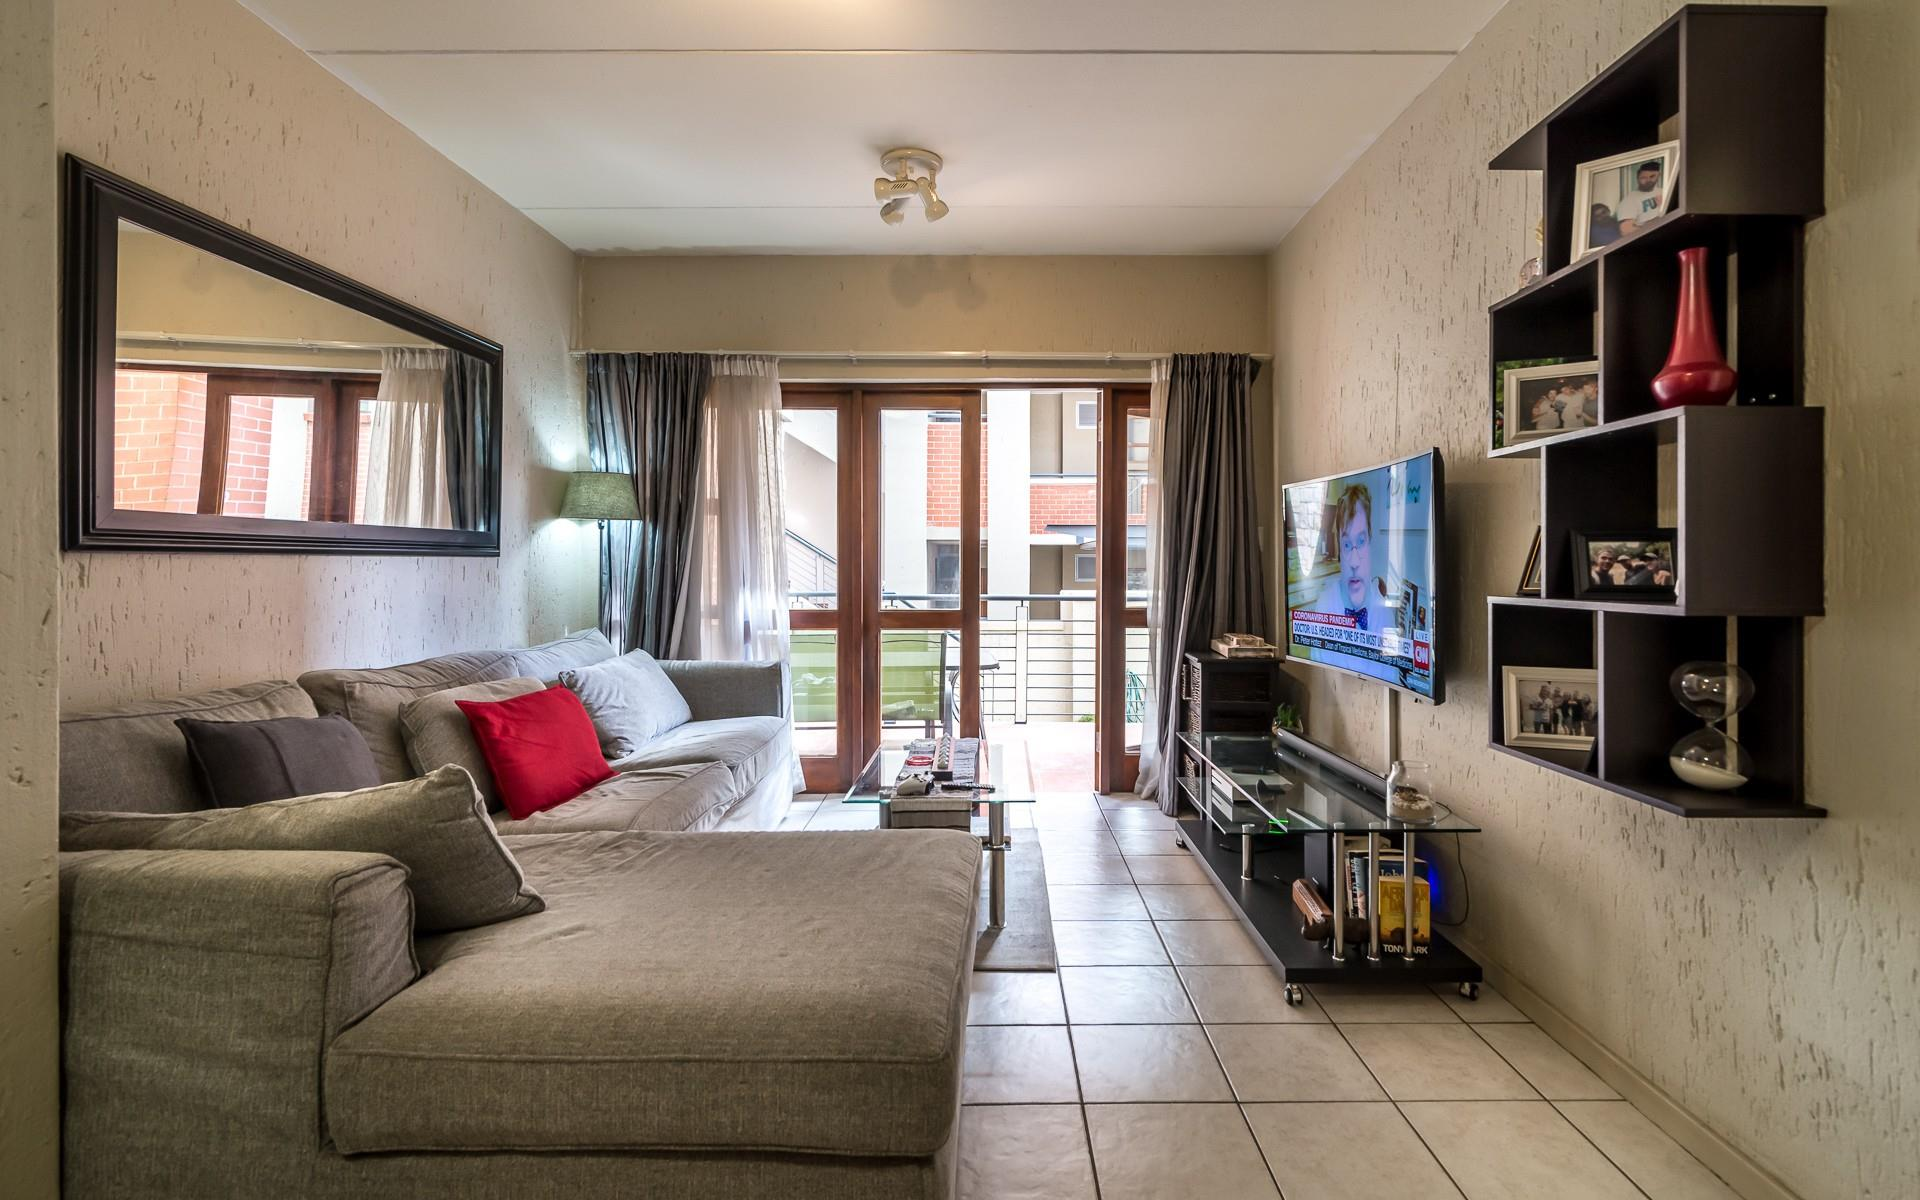 1 Bedroom Apartment / Flat For Sale in Douglasdale